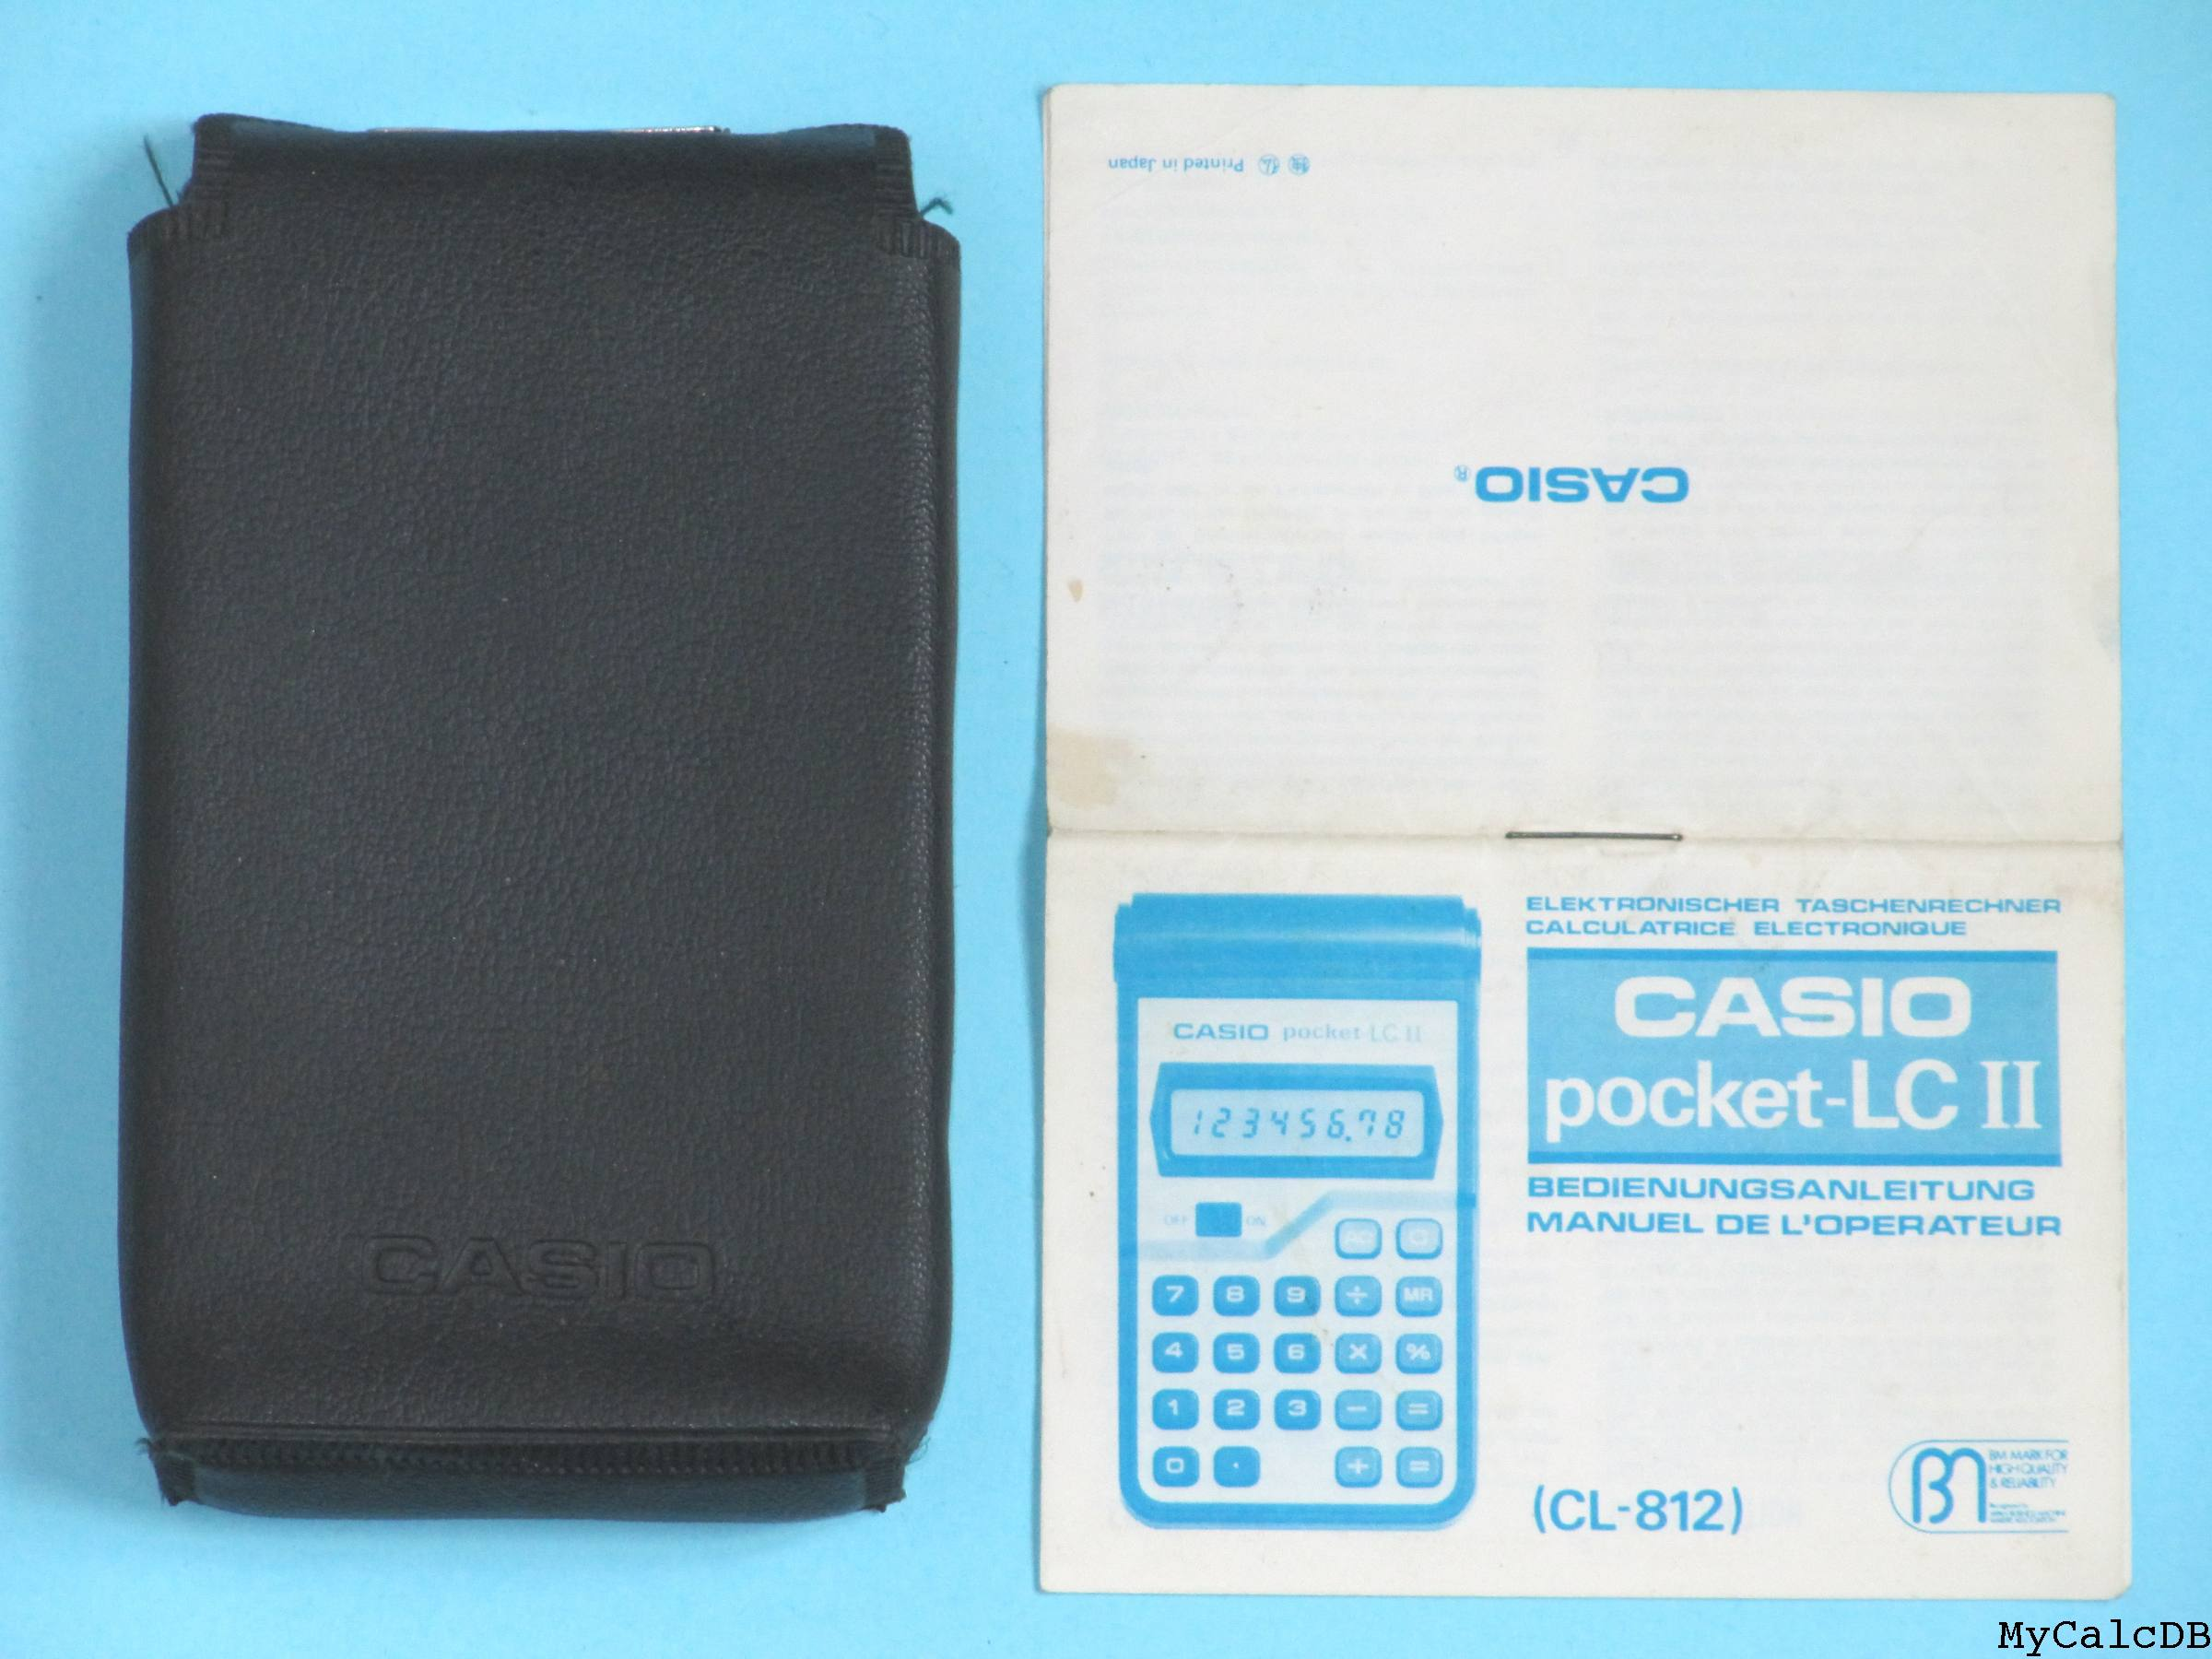 Casio pocket-LC II